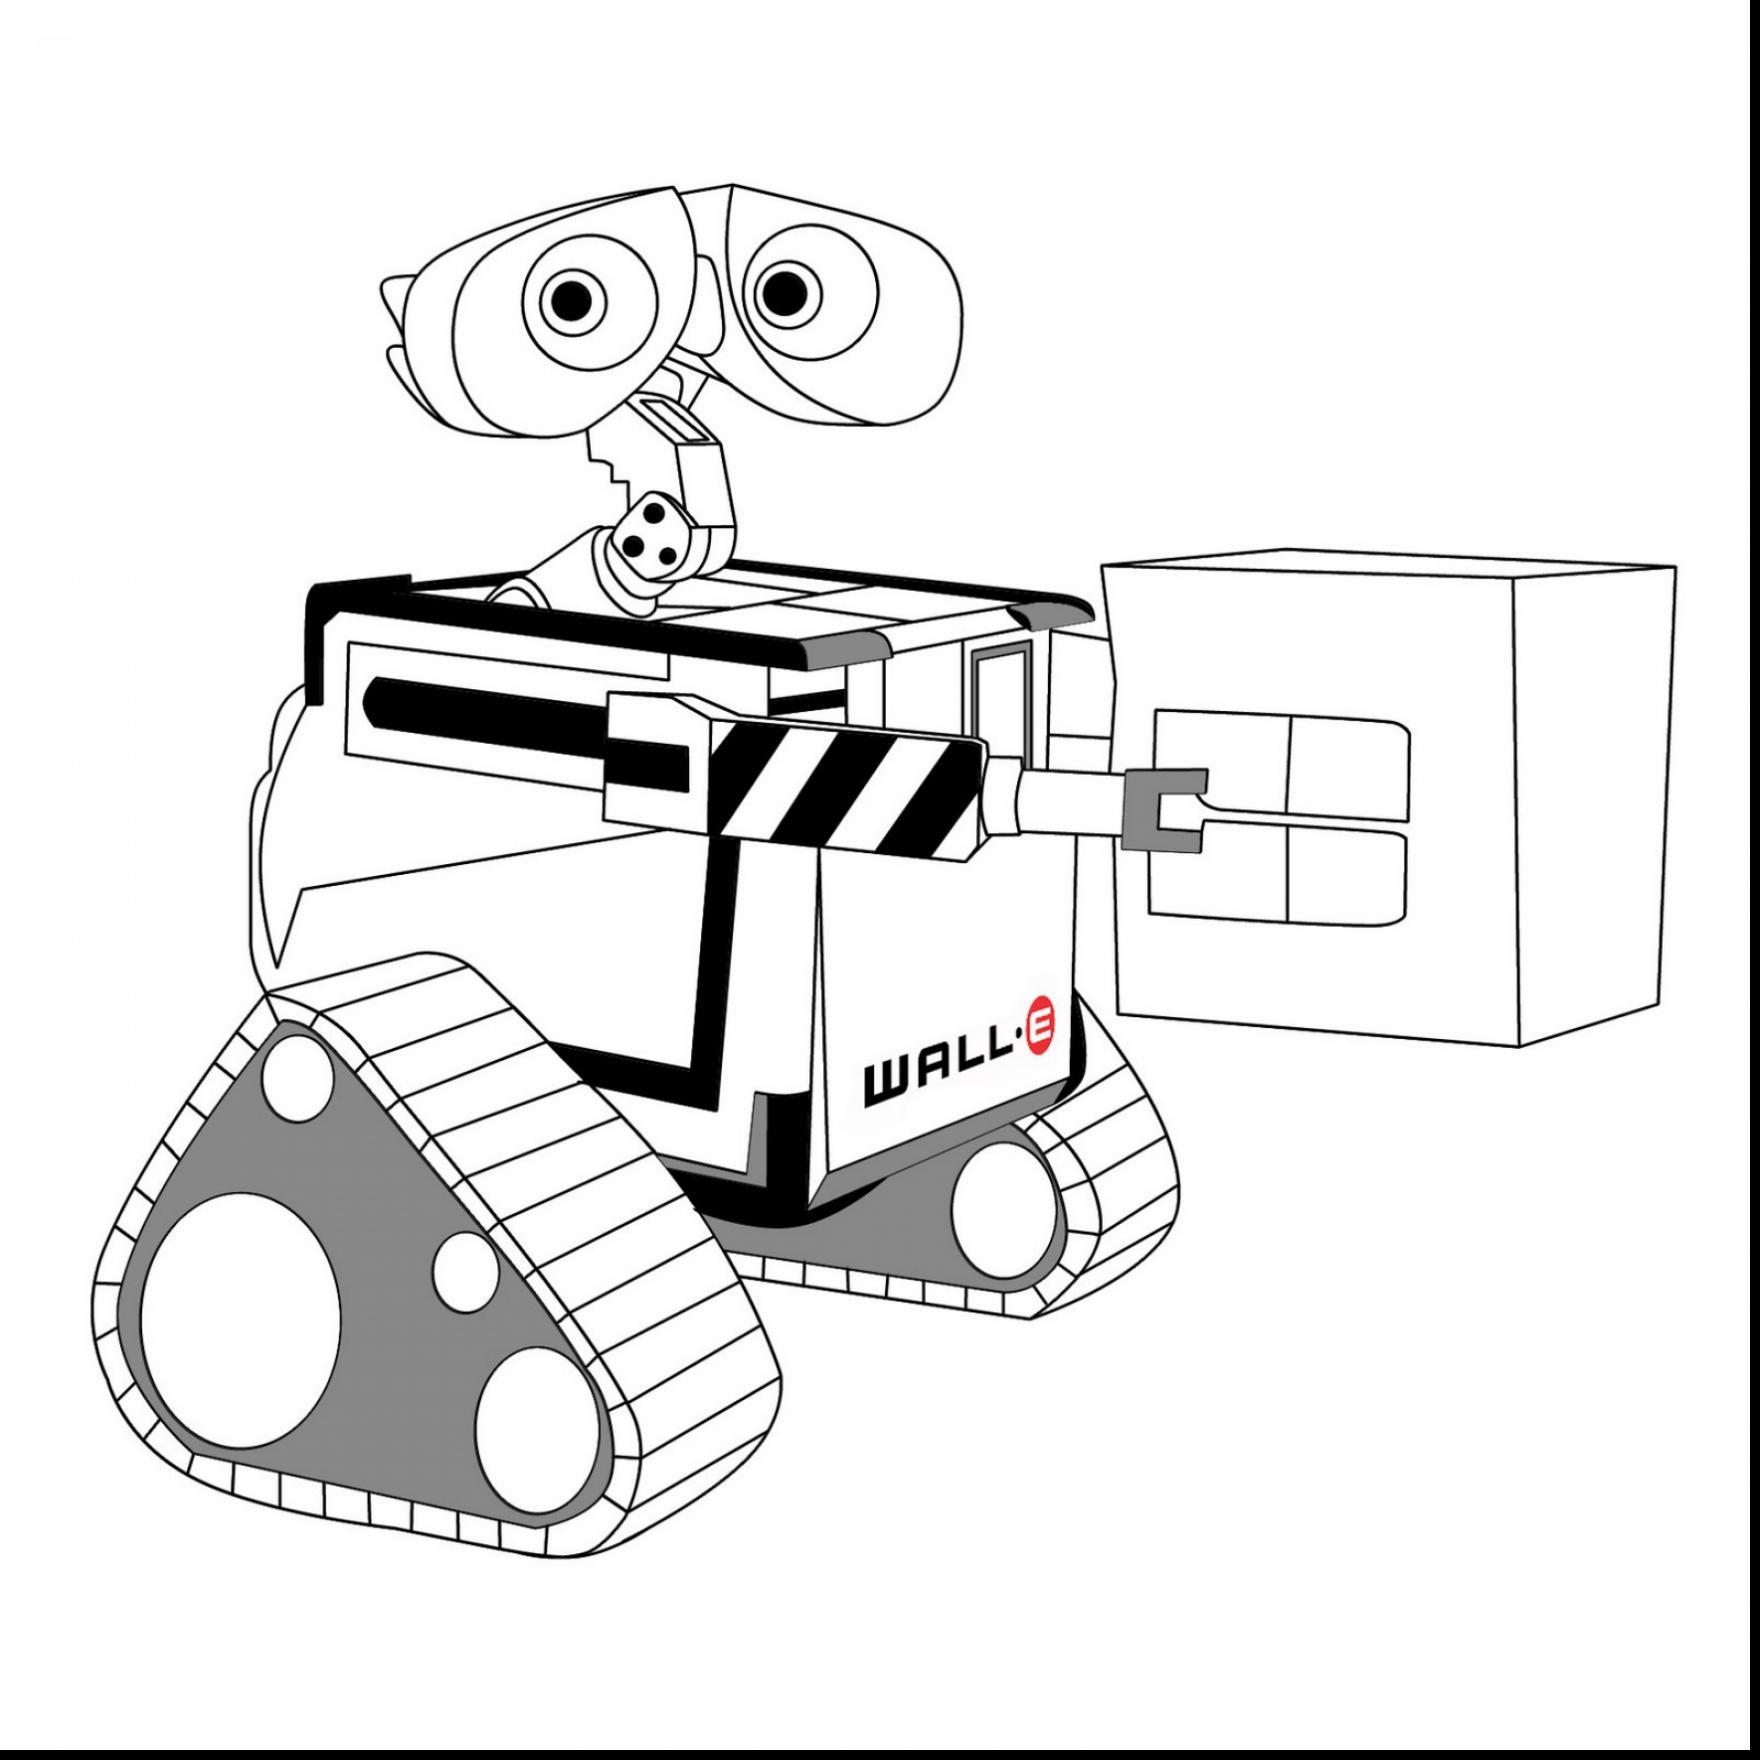 1760x1760 Awesome Walle And Plant Coloring Pages For Kids Colorngpagesco